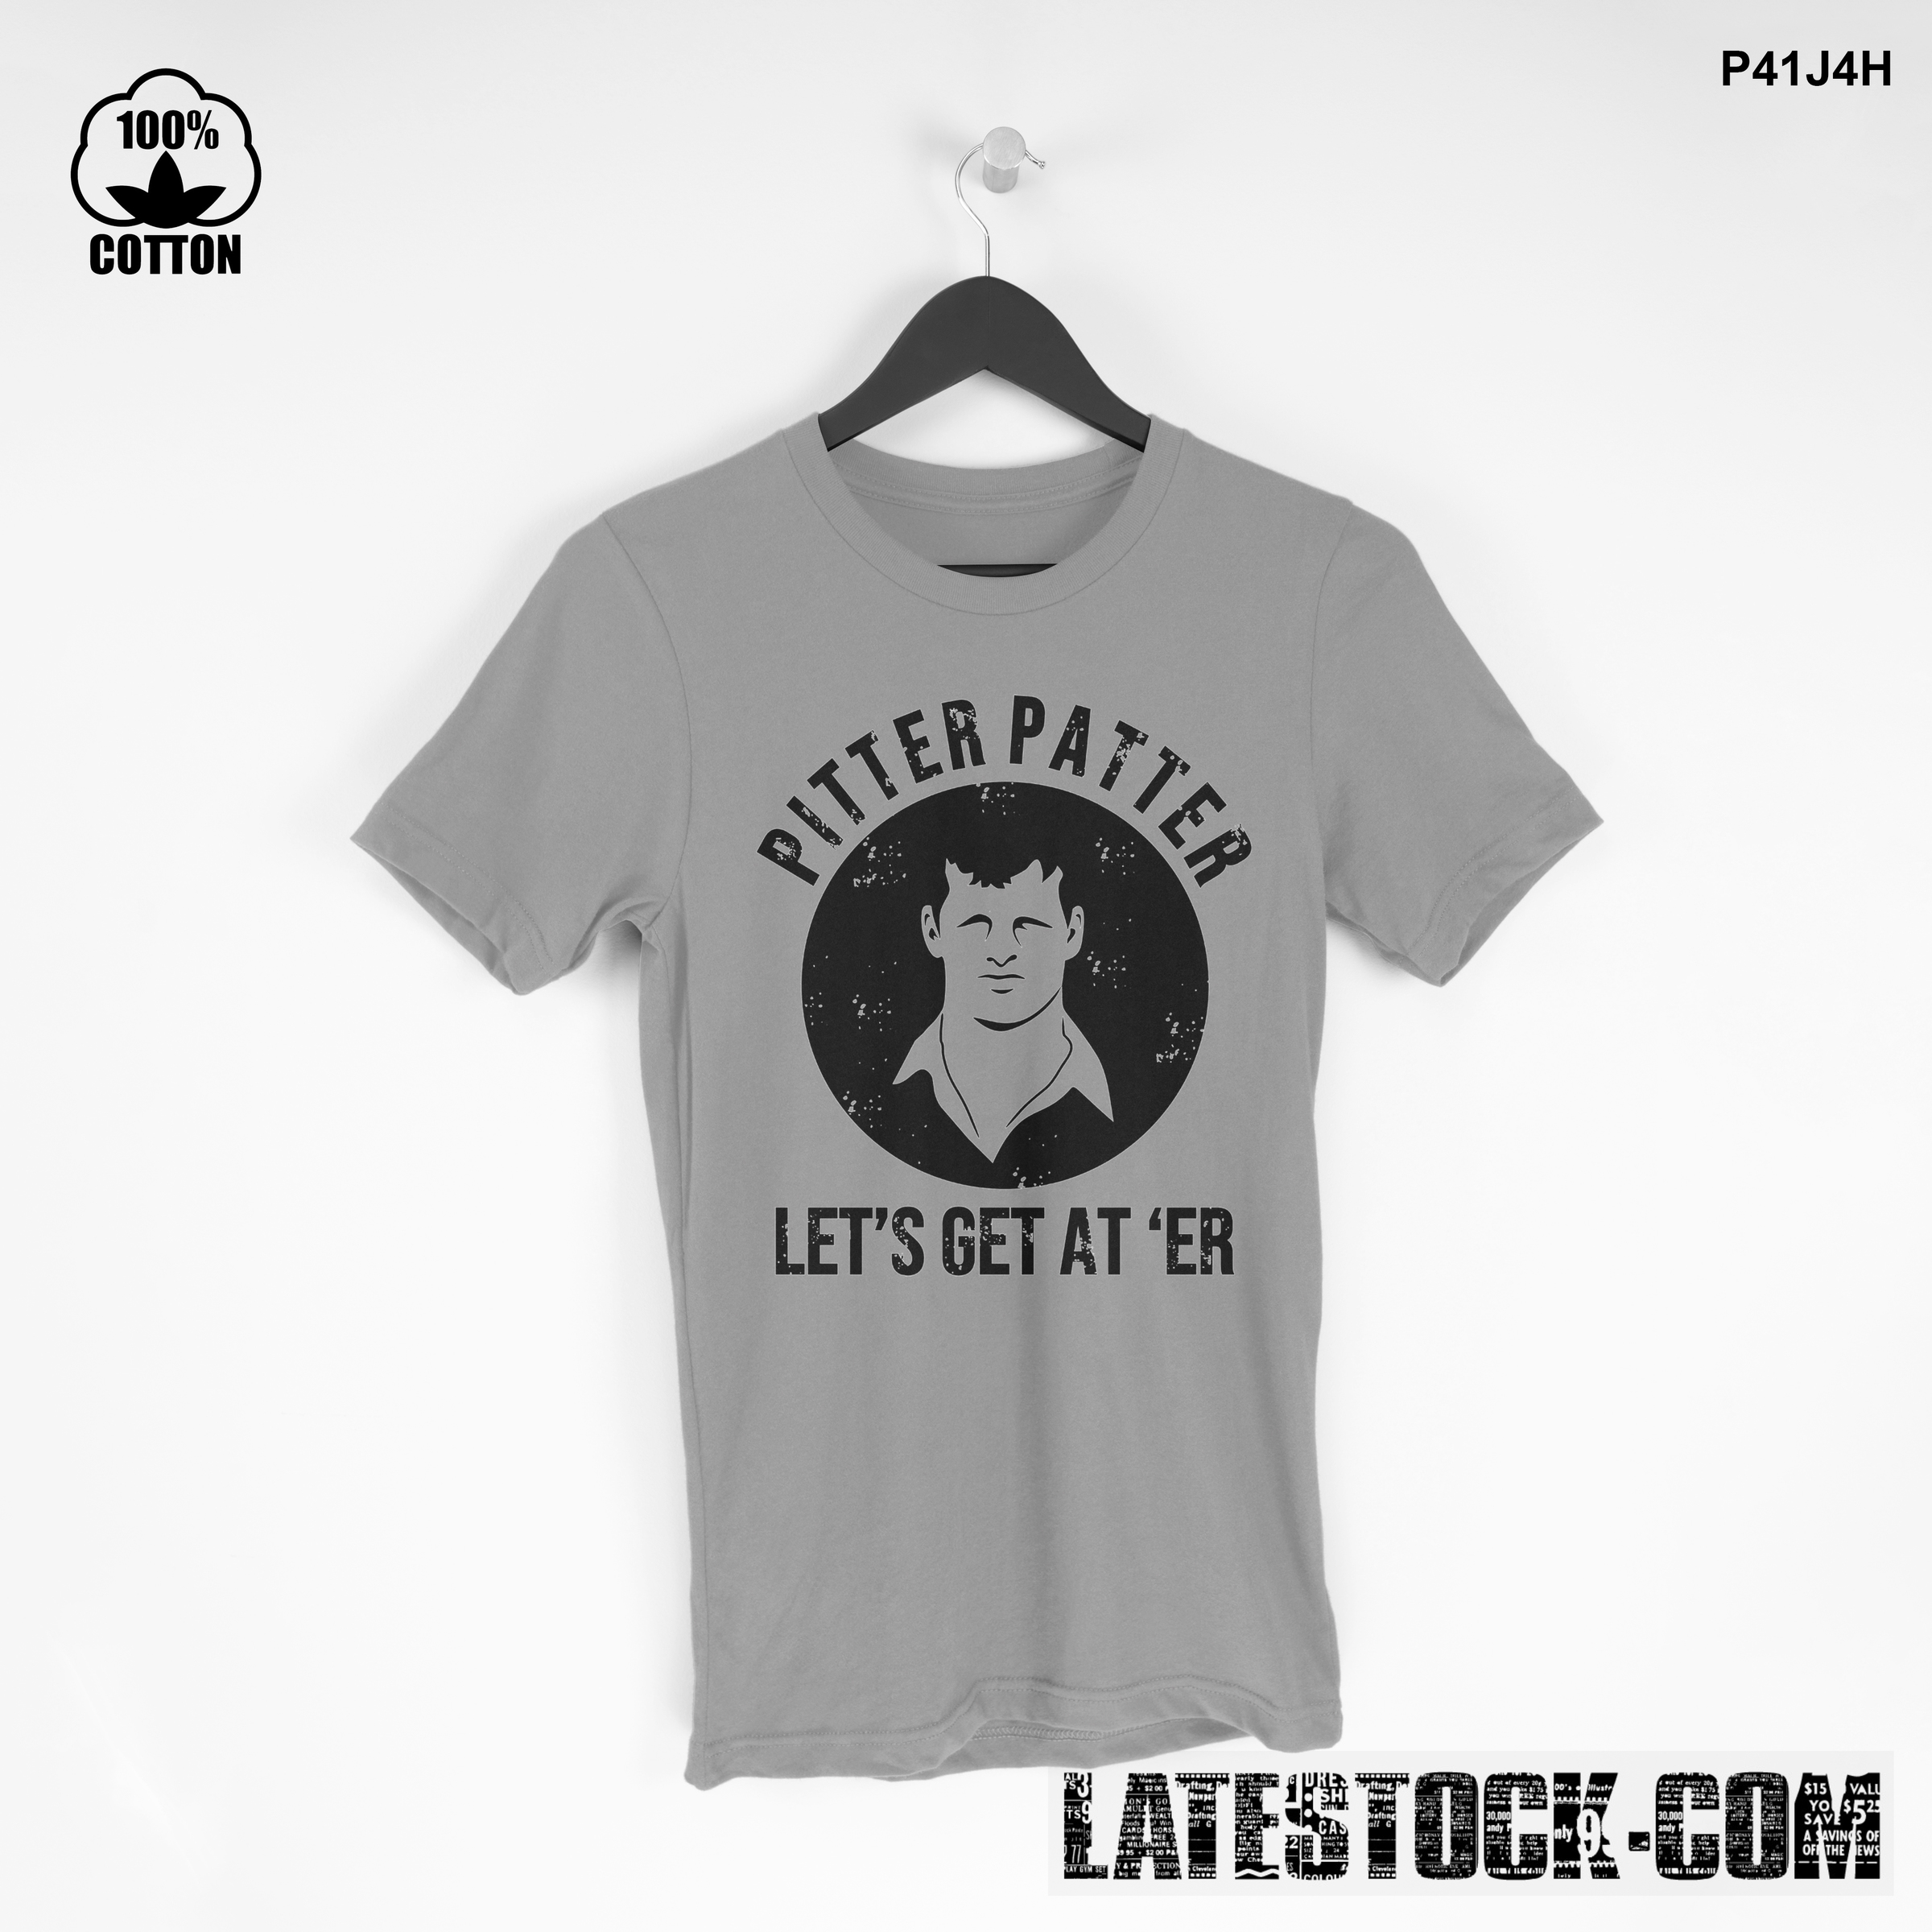 1LIMITED EDITION!! PITTER PATTER T SHIRT Gainsboro.jpg